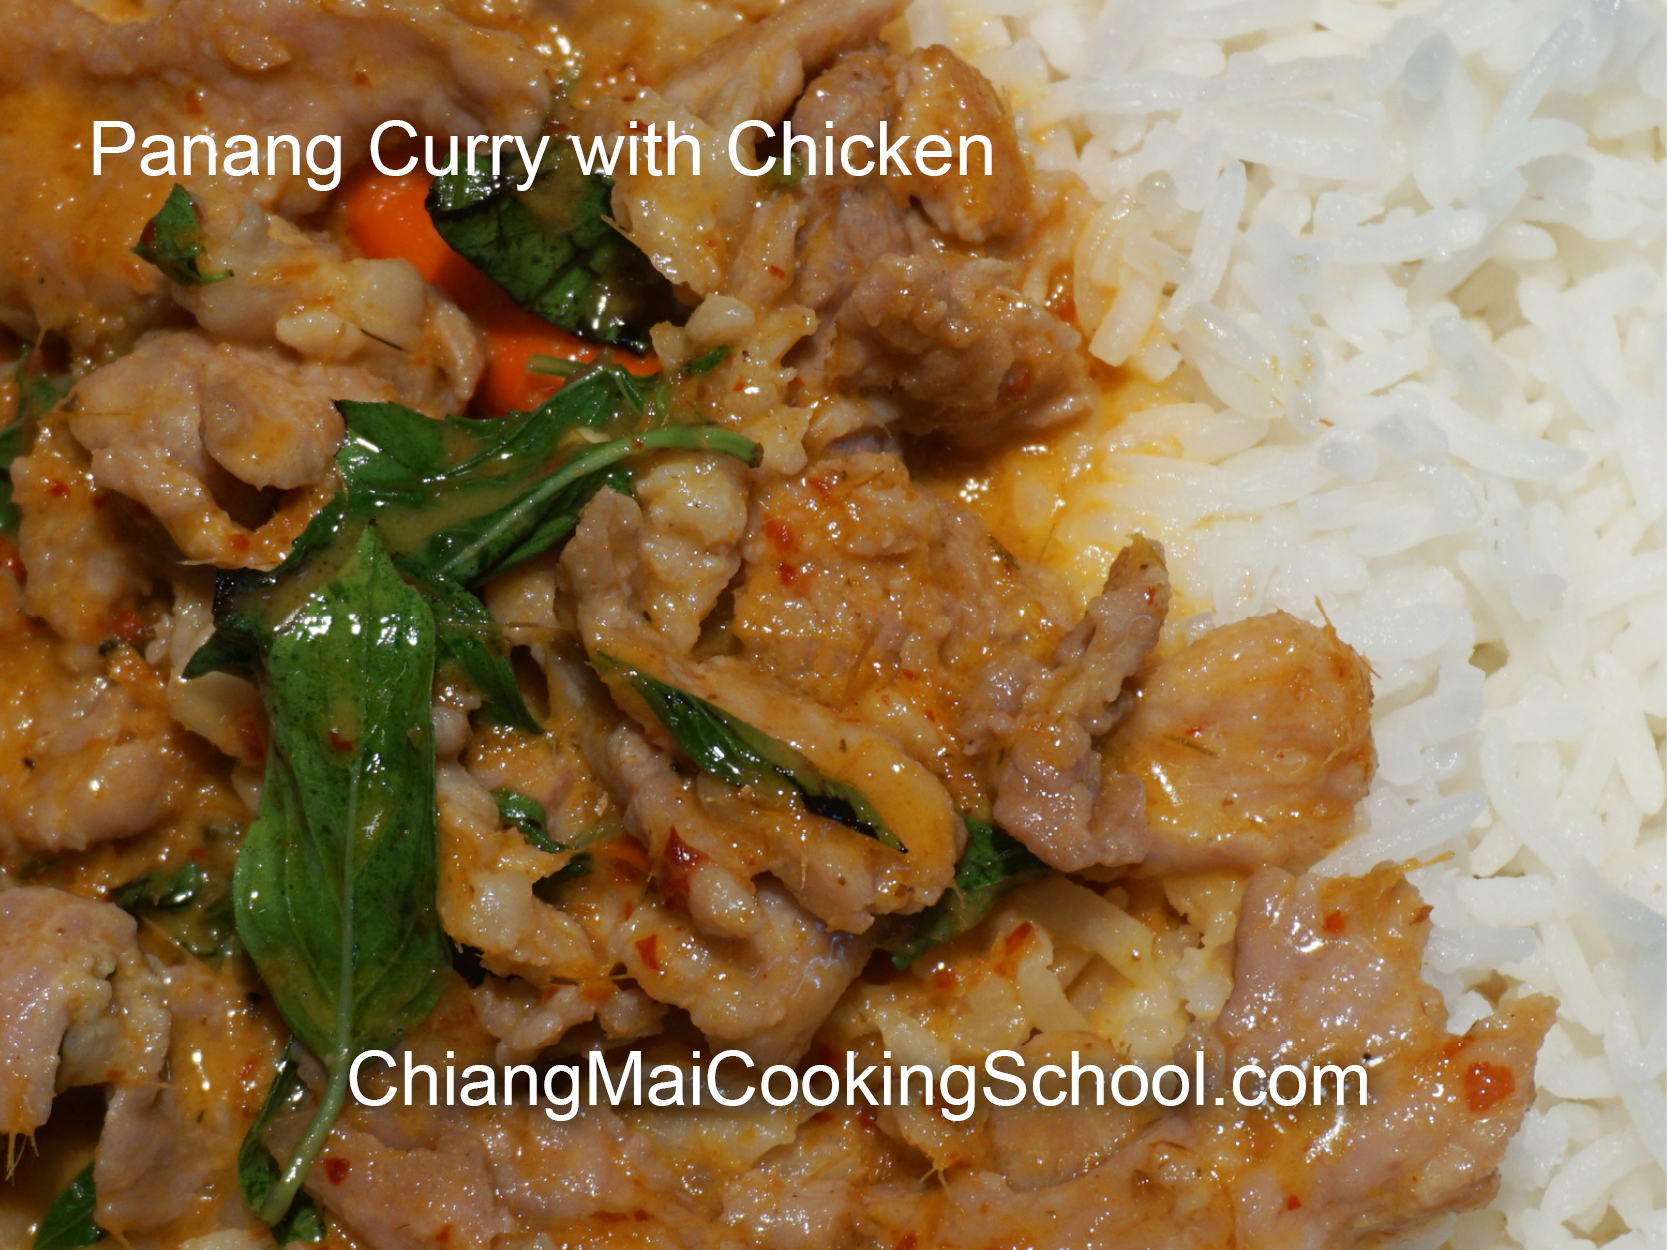 Delicious Chicken Panang Curry from Chiang Mai Cooking School